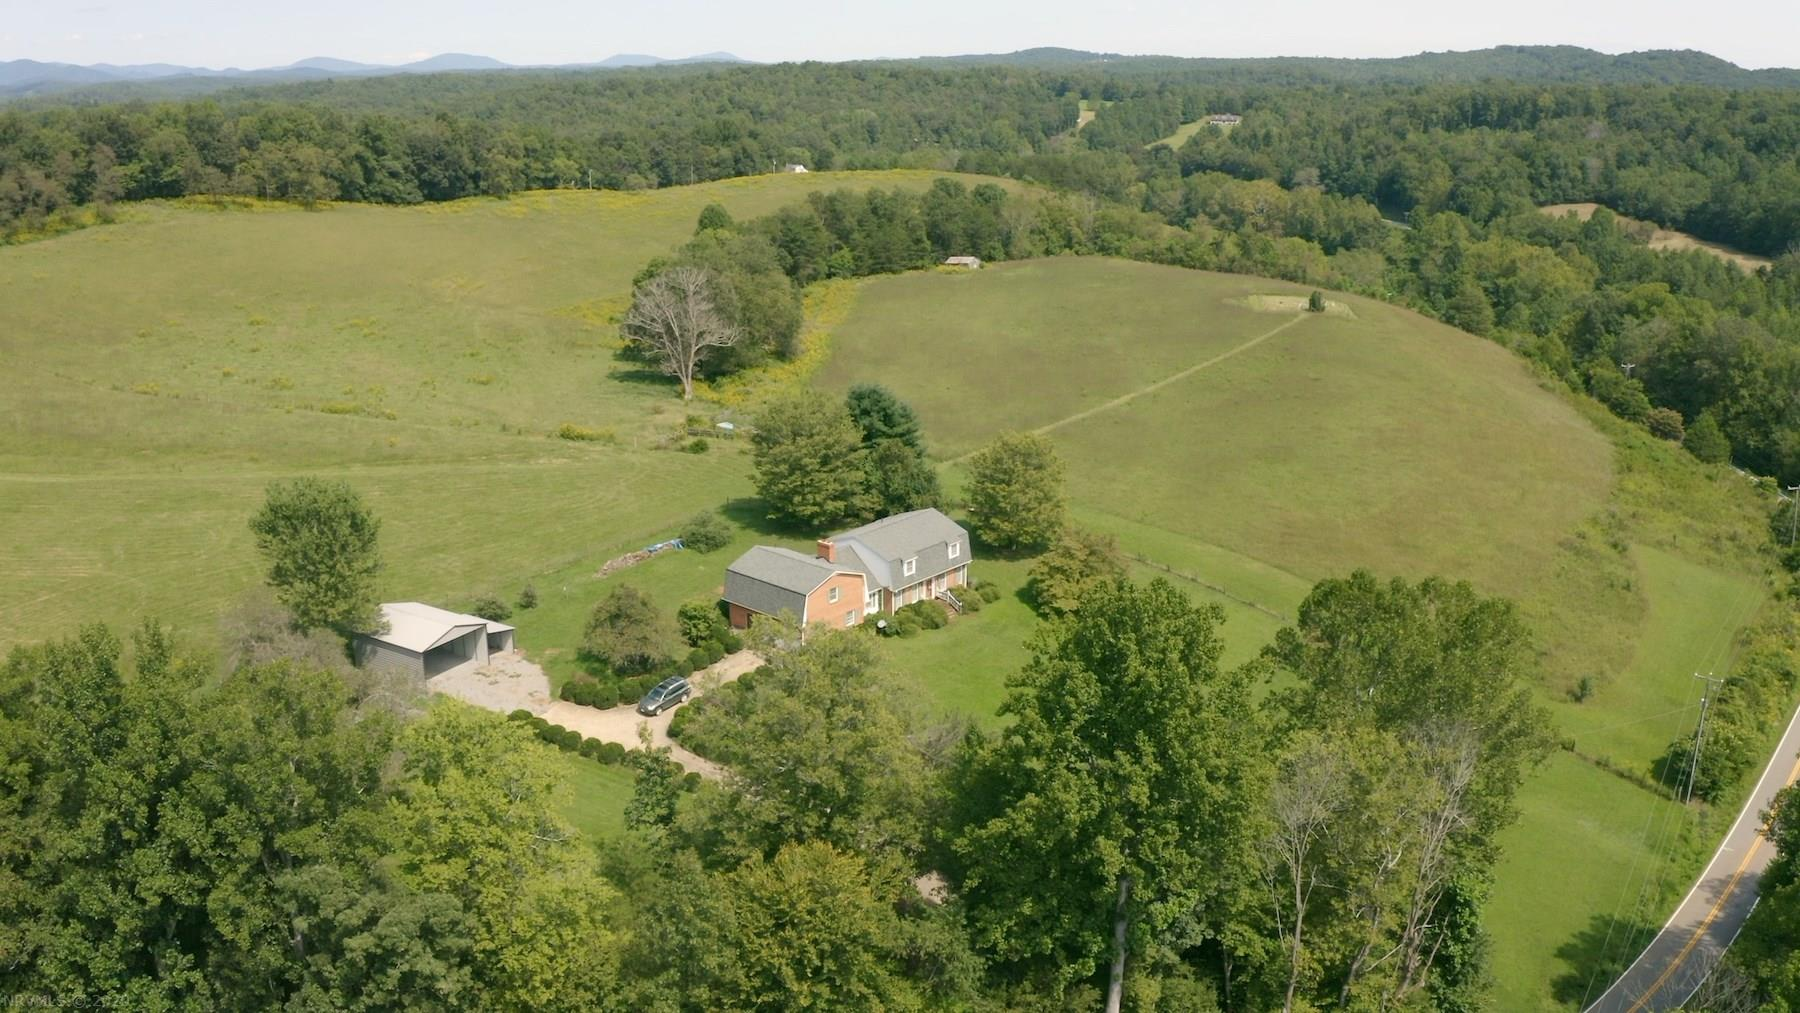 Online Only Auction! - Bid now through Oct 15th @ 4PM.  Preview dates Oct 3 @ 10 AM & Oct 8th @ 4 PM. Price is tax assessment of house tract, not reserve. You have the opportunity to purchase a beautiful farm for sale in Stuart VA. This farm holds 71 +/- acres of wooded and open acreage as well as a large brick home. This land for sale features creek frontage on Rock Castle Creek, rolling pastureland and timber on the back side of the property. There is also river frontage on Smith River! This property would be a great recreational retreat! Purchase this property for sale for farming, recreational use or as a homestead! Utilize the beautiful fenced pastures as well as the hay fields. You have plenty of room for gardening as well as livestock such as cattle, sheep, horses, etc. The home on the property holds around 3,422 sq. ft. of space with 5 bedrooms, 4 baths, tons of living space and an attached garage! Bid Now!